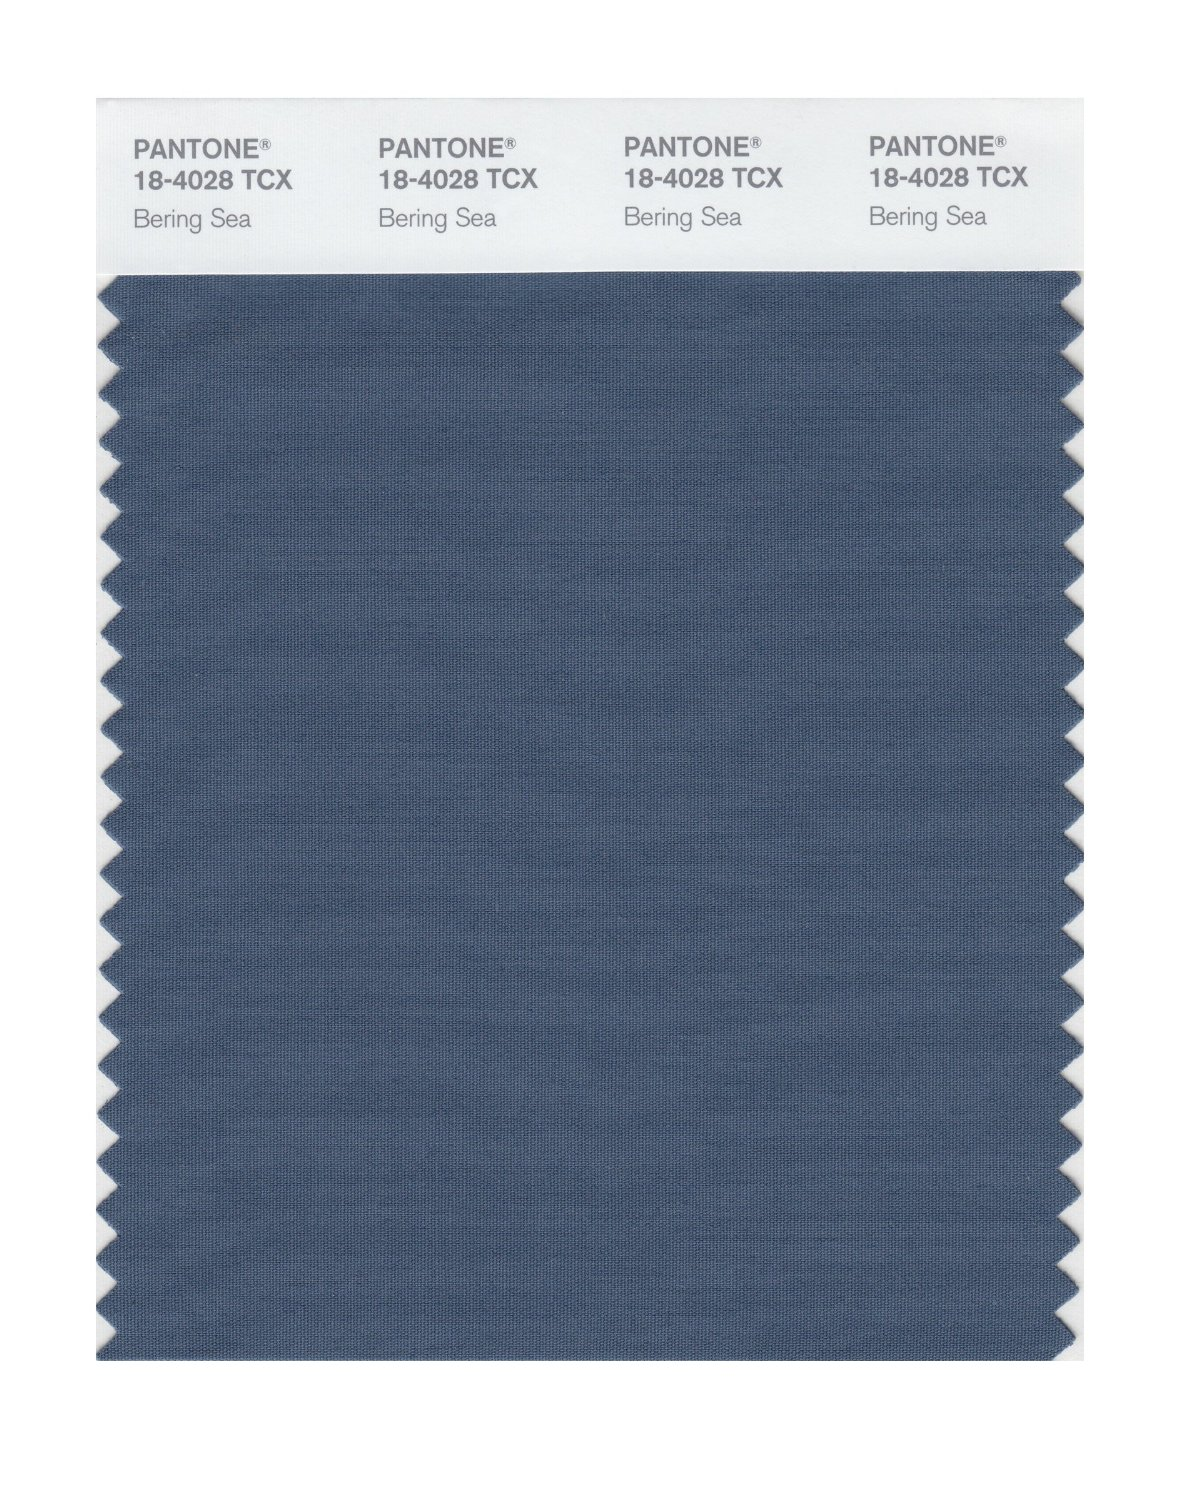 Pantone Smart Swatch 18-4028 Bering Sea